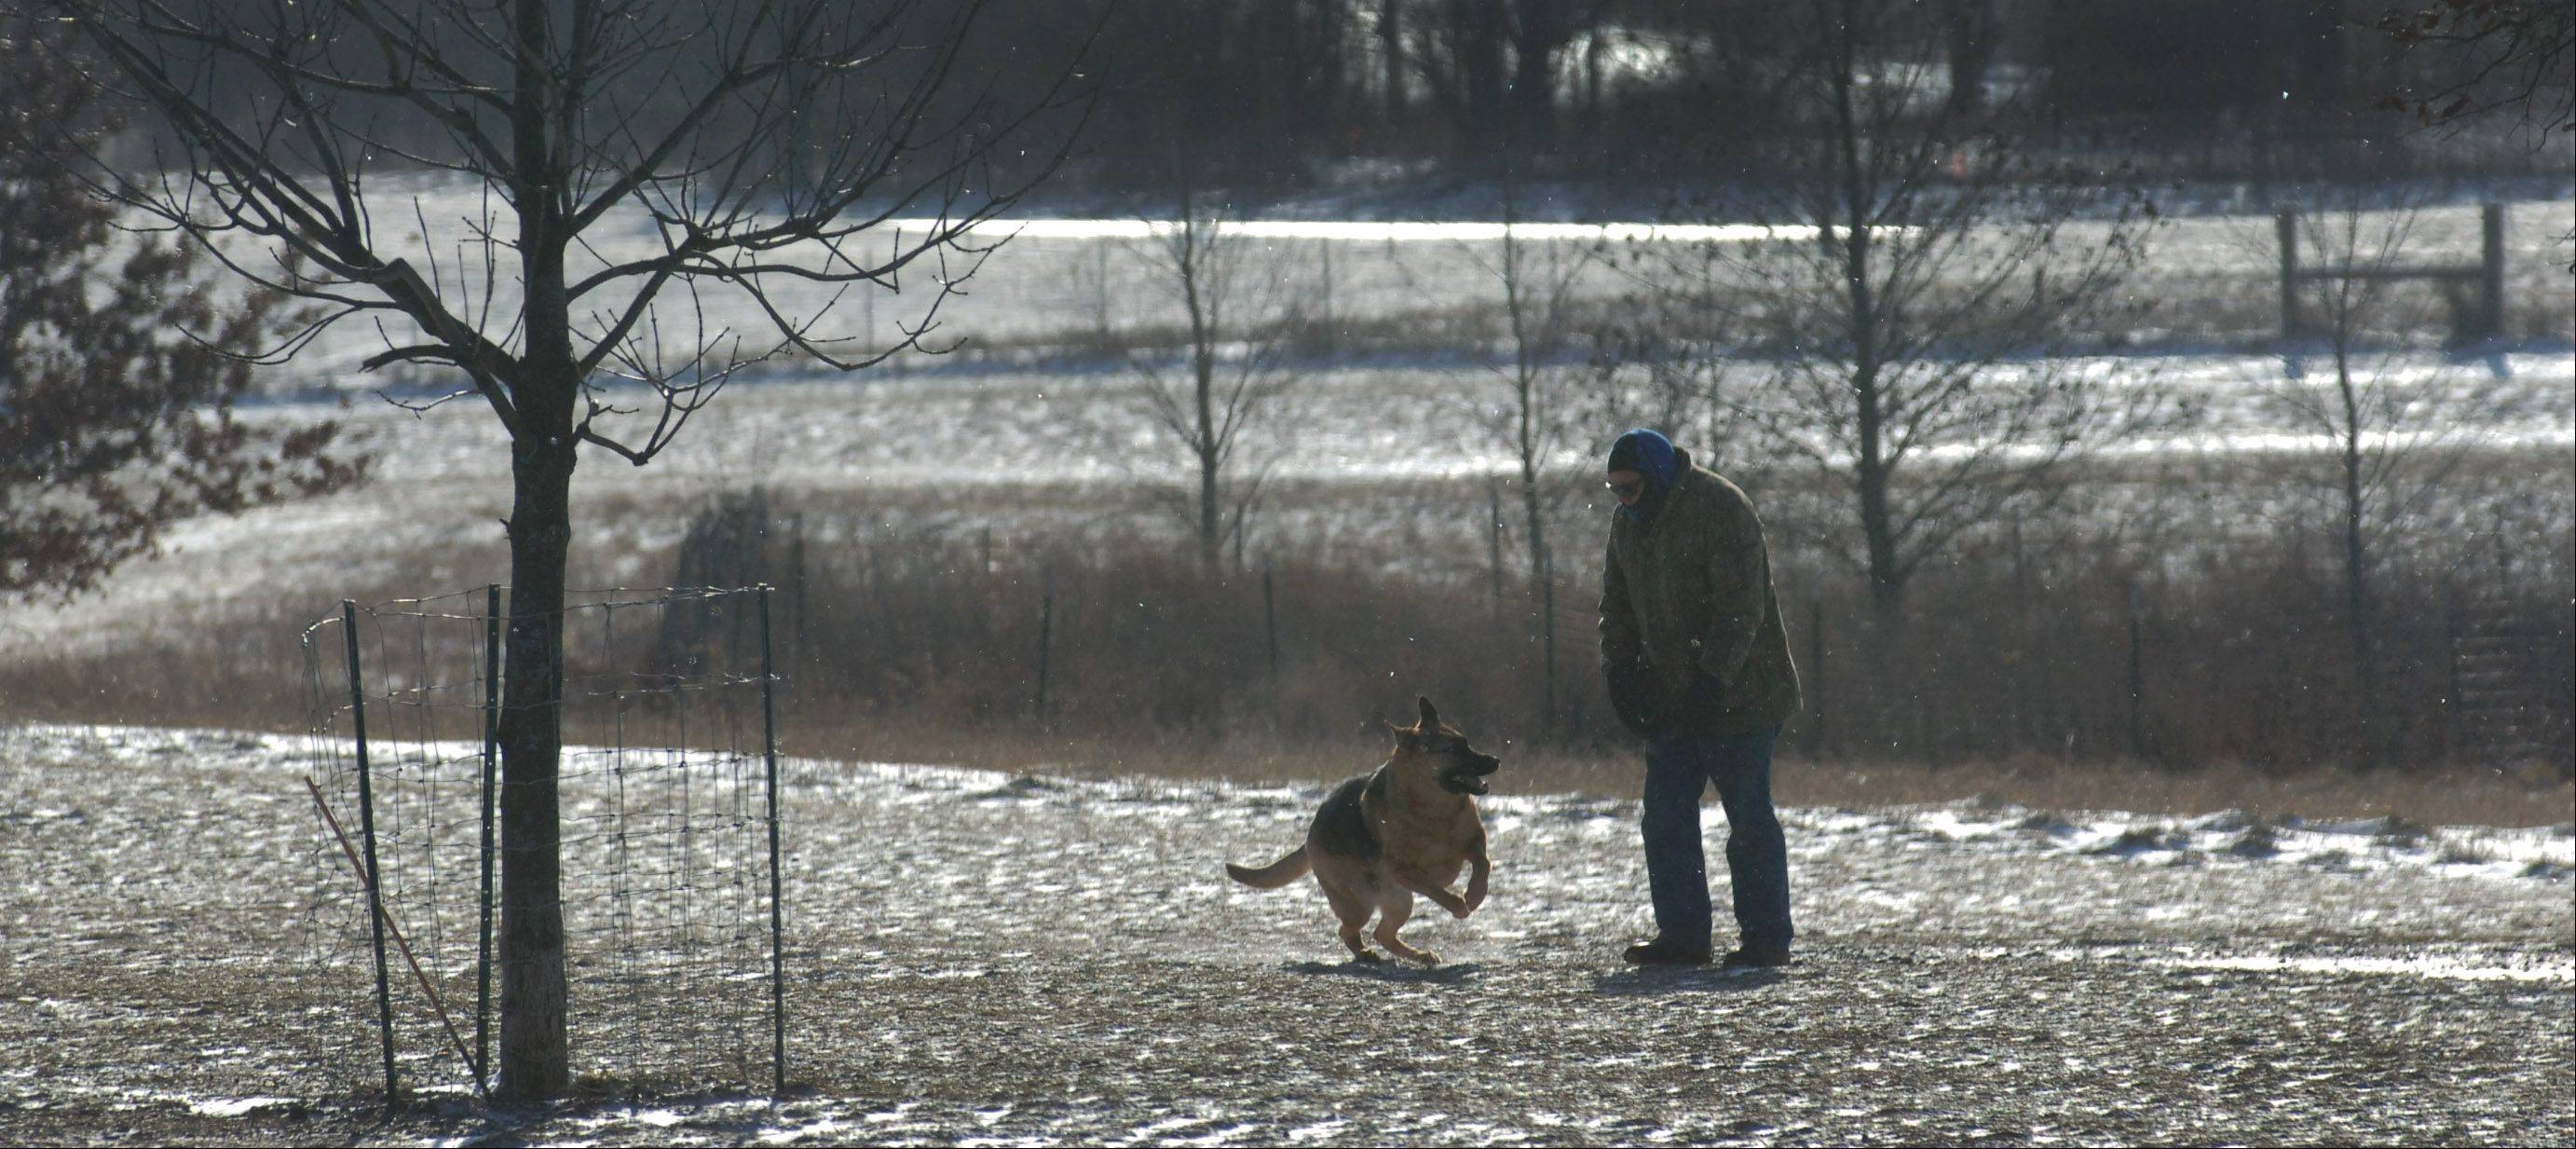 On Tuesday, visitors of the Lakewood Dog Exercise Area near Wauconda were enjoying temperatures in the 60's. Thursday's temperatures were radically different. Mundelein resident Tony Farina bundled up against the cold and visits with a German Shepherd who paid him a visit.